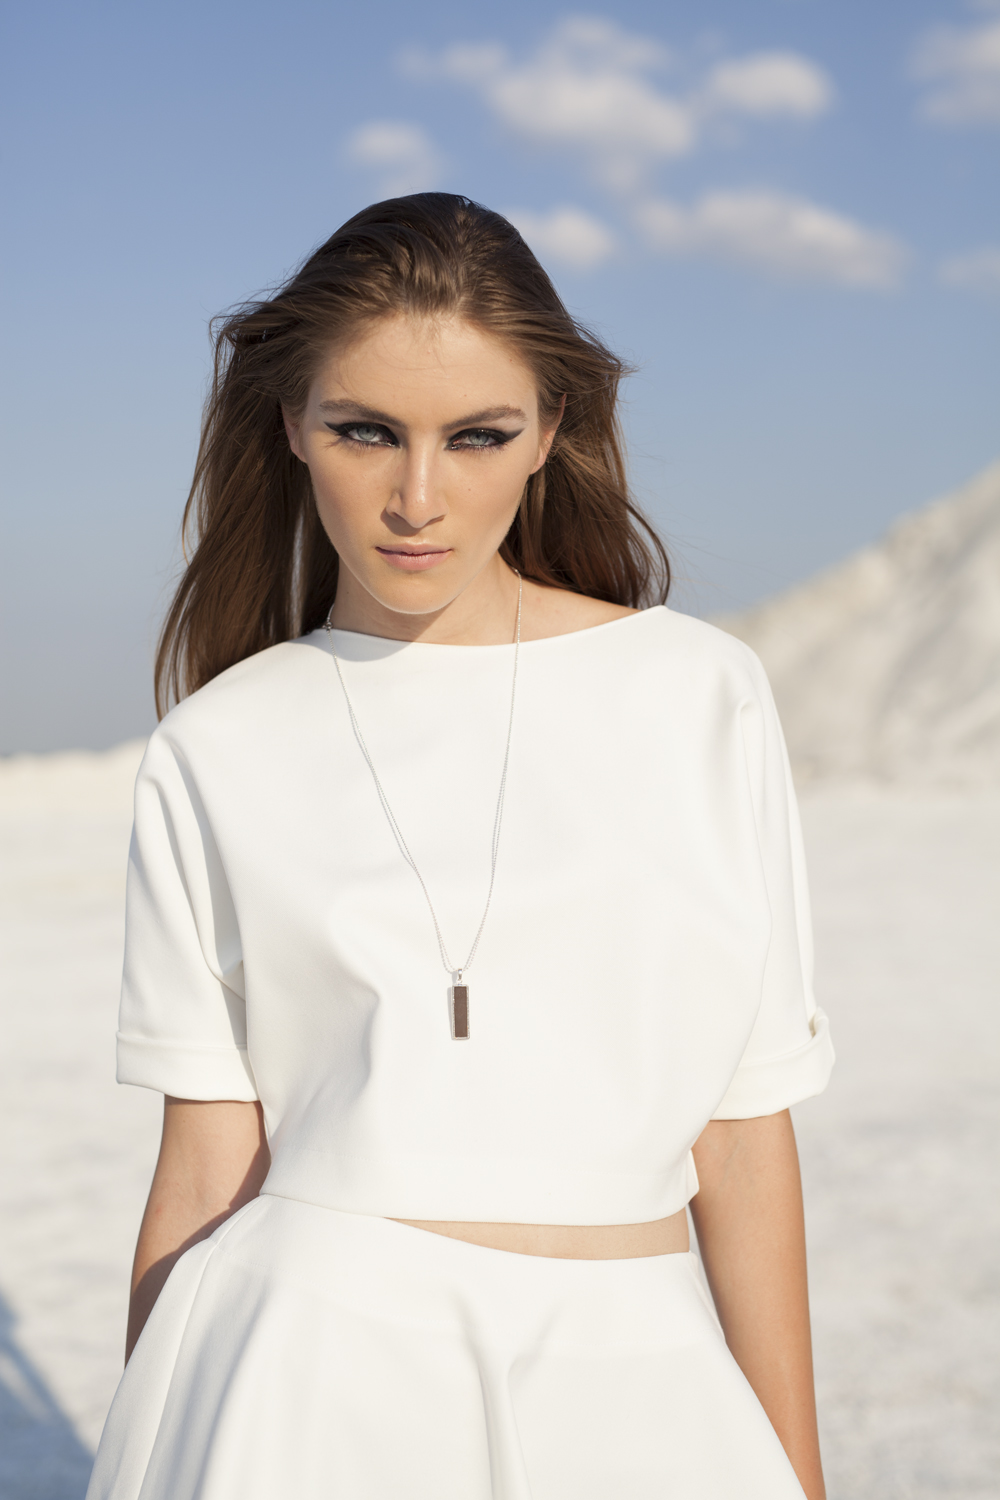 LAURA DAILI FASHION (1)